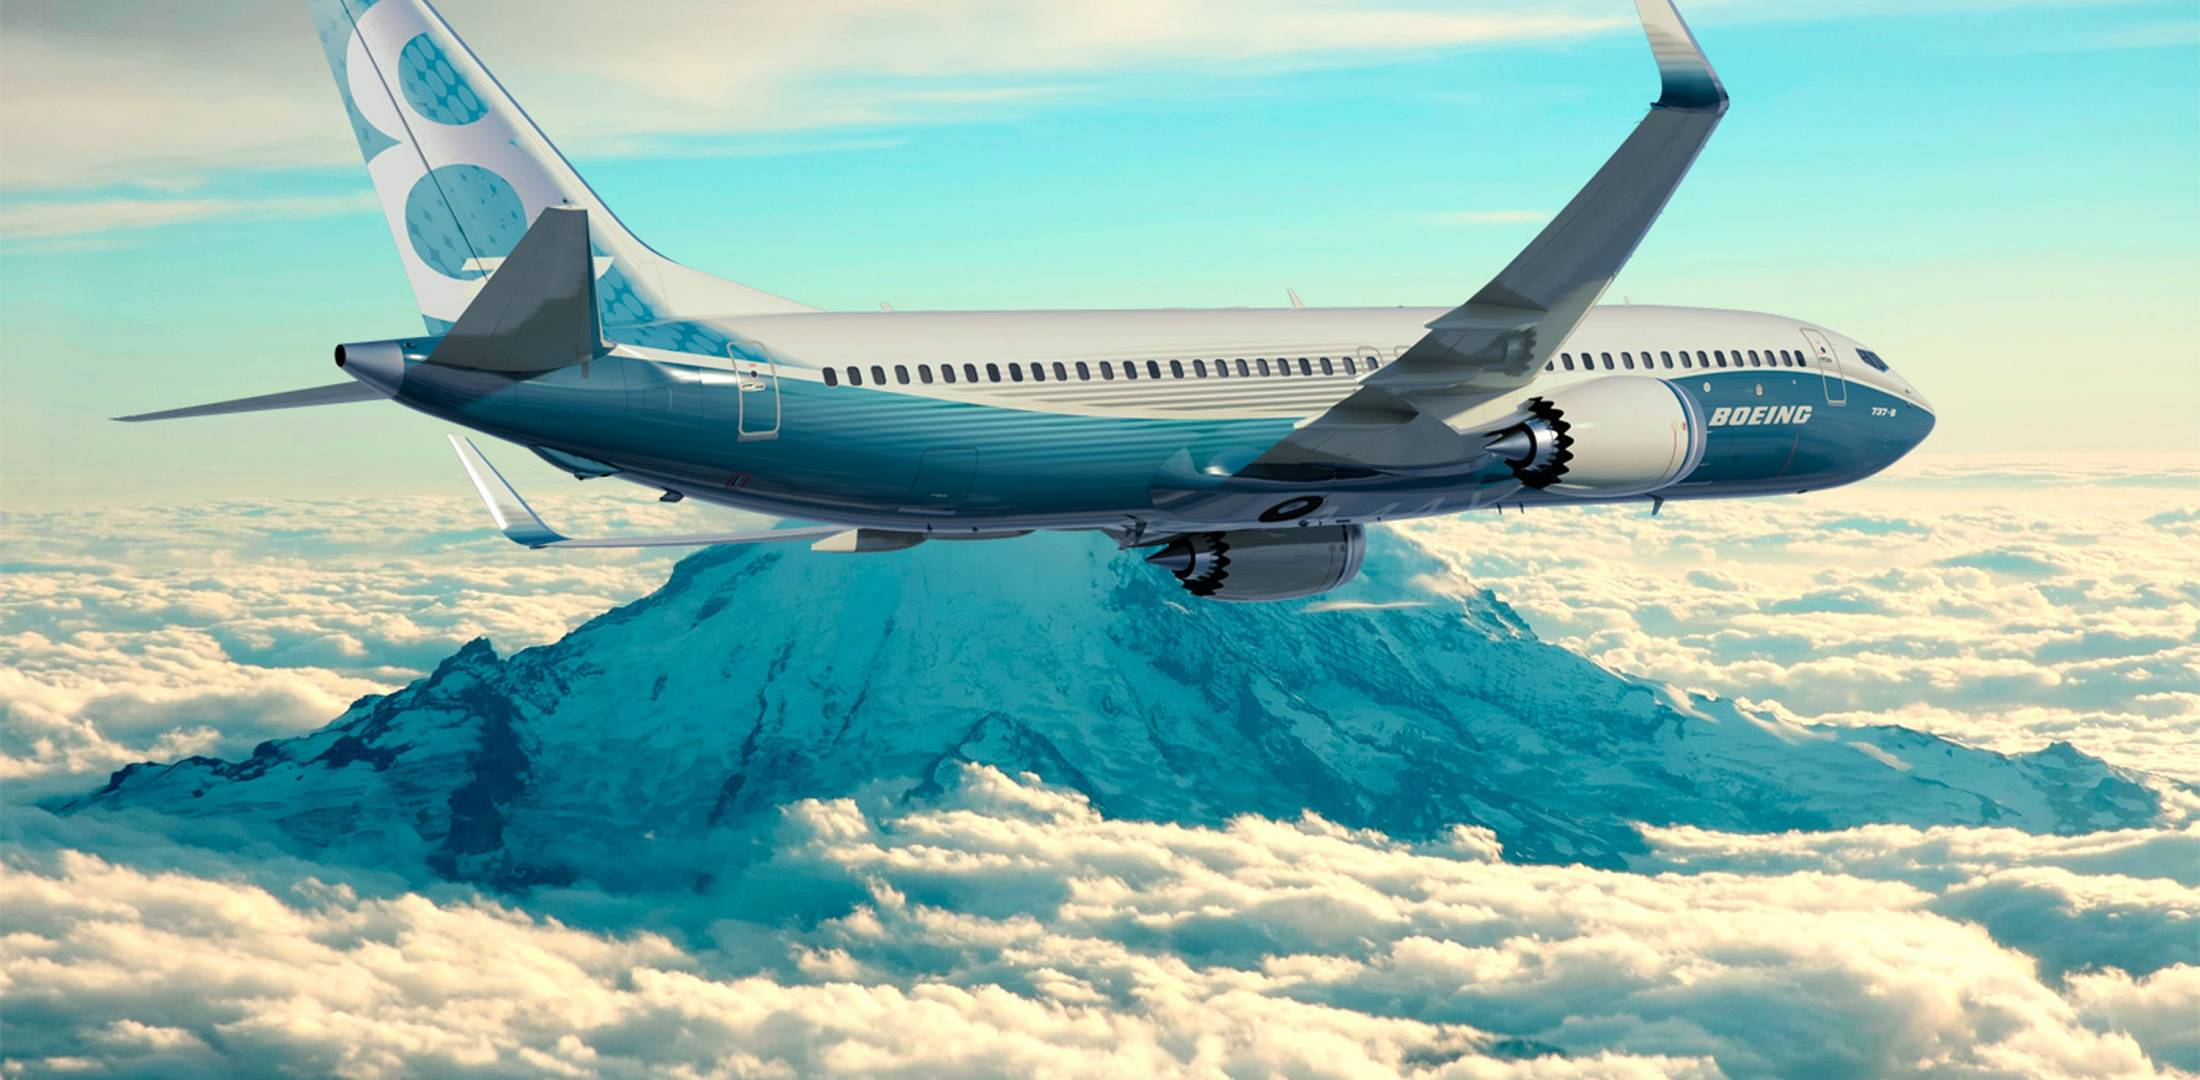 Boeing 737MAX computer-generated image